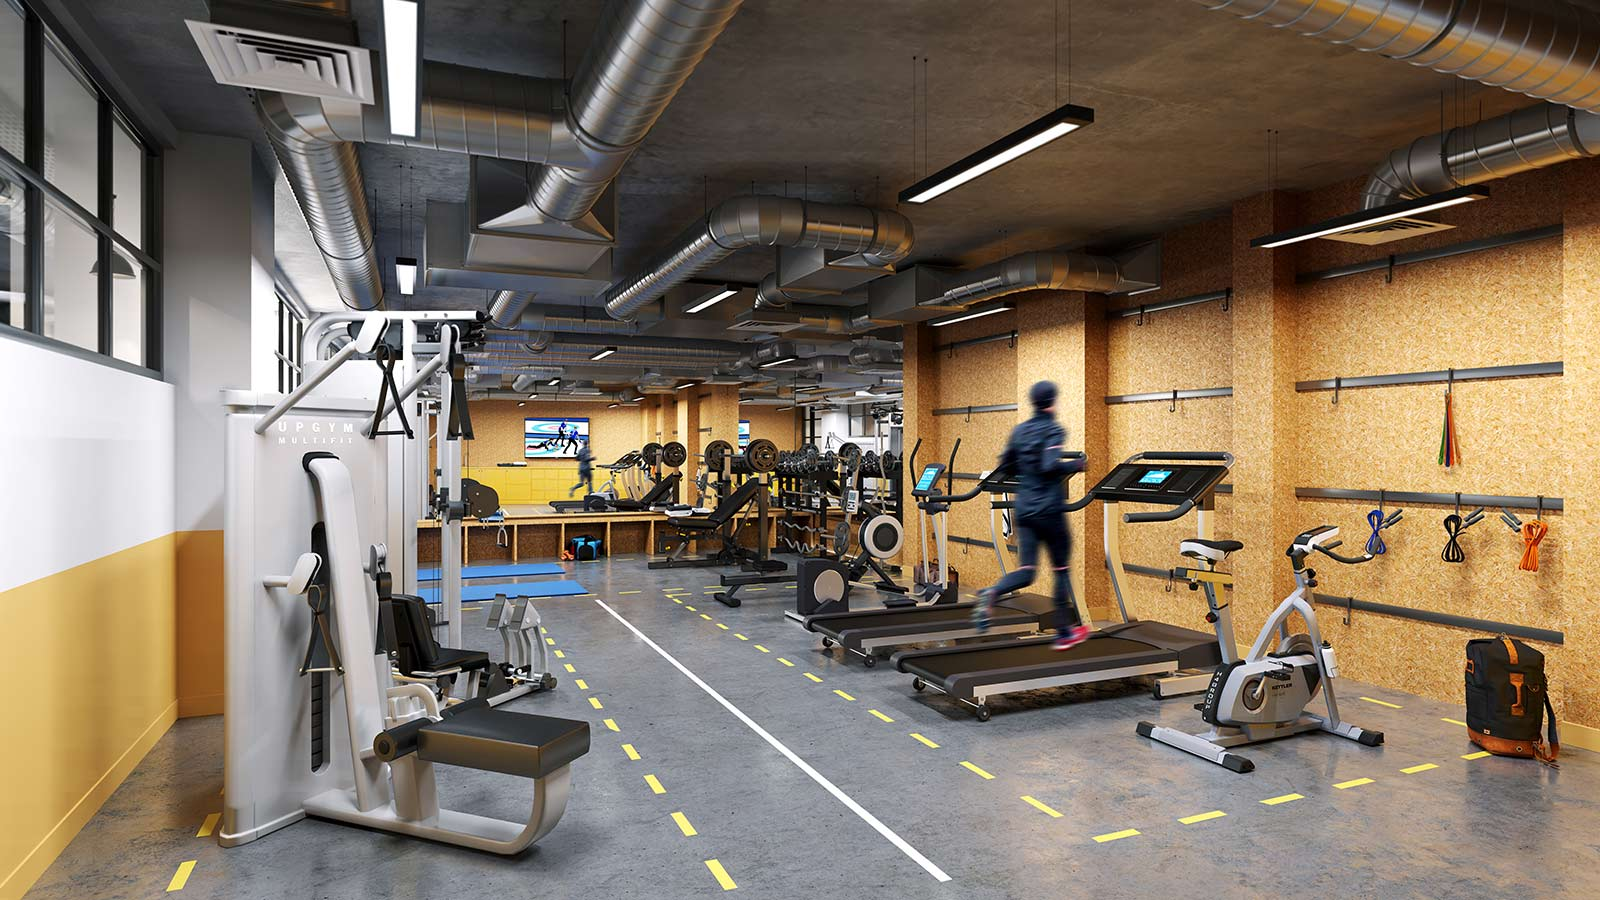 The West wing gym